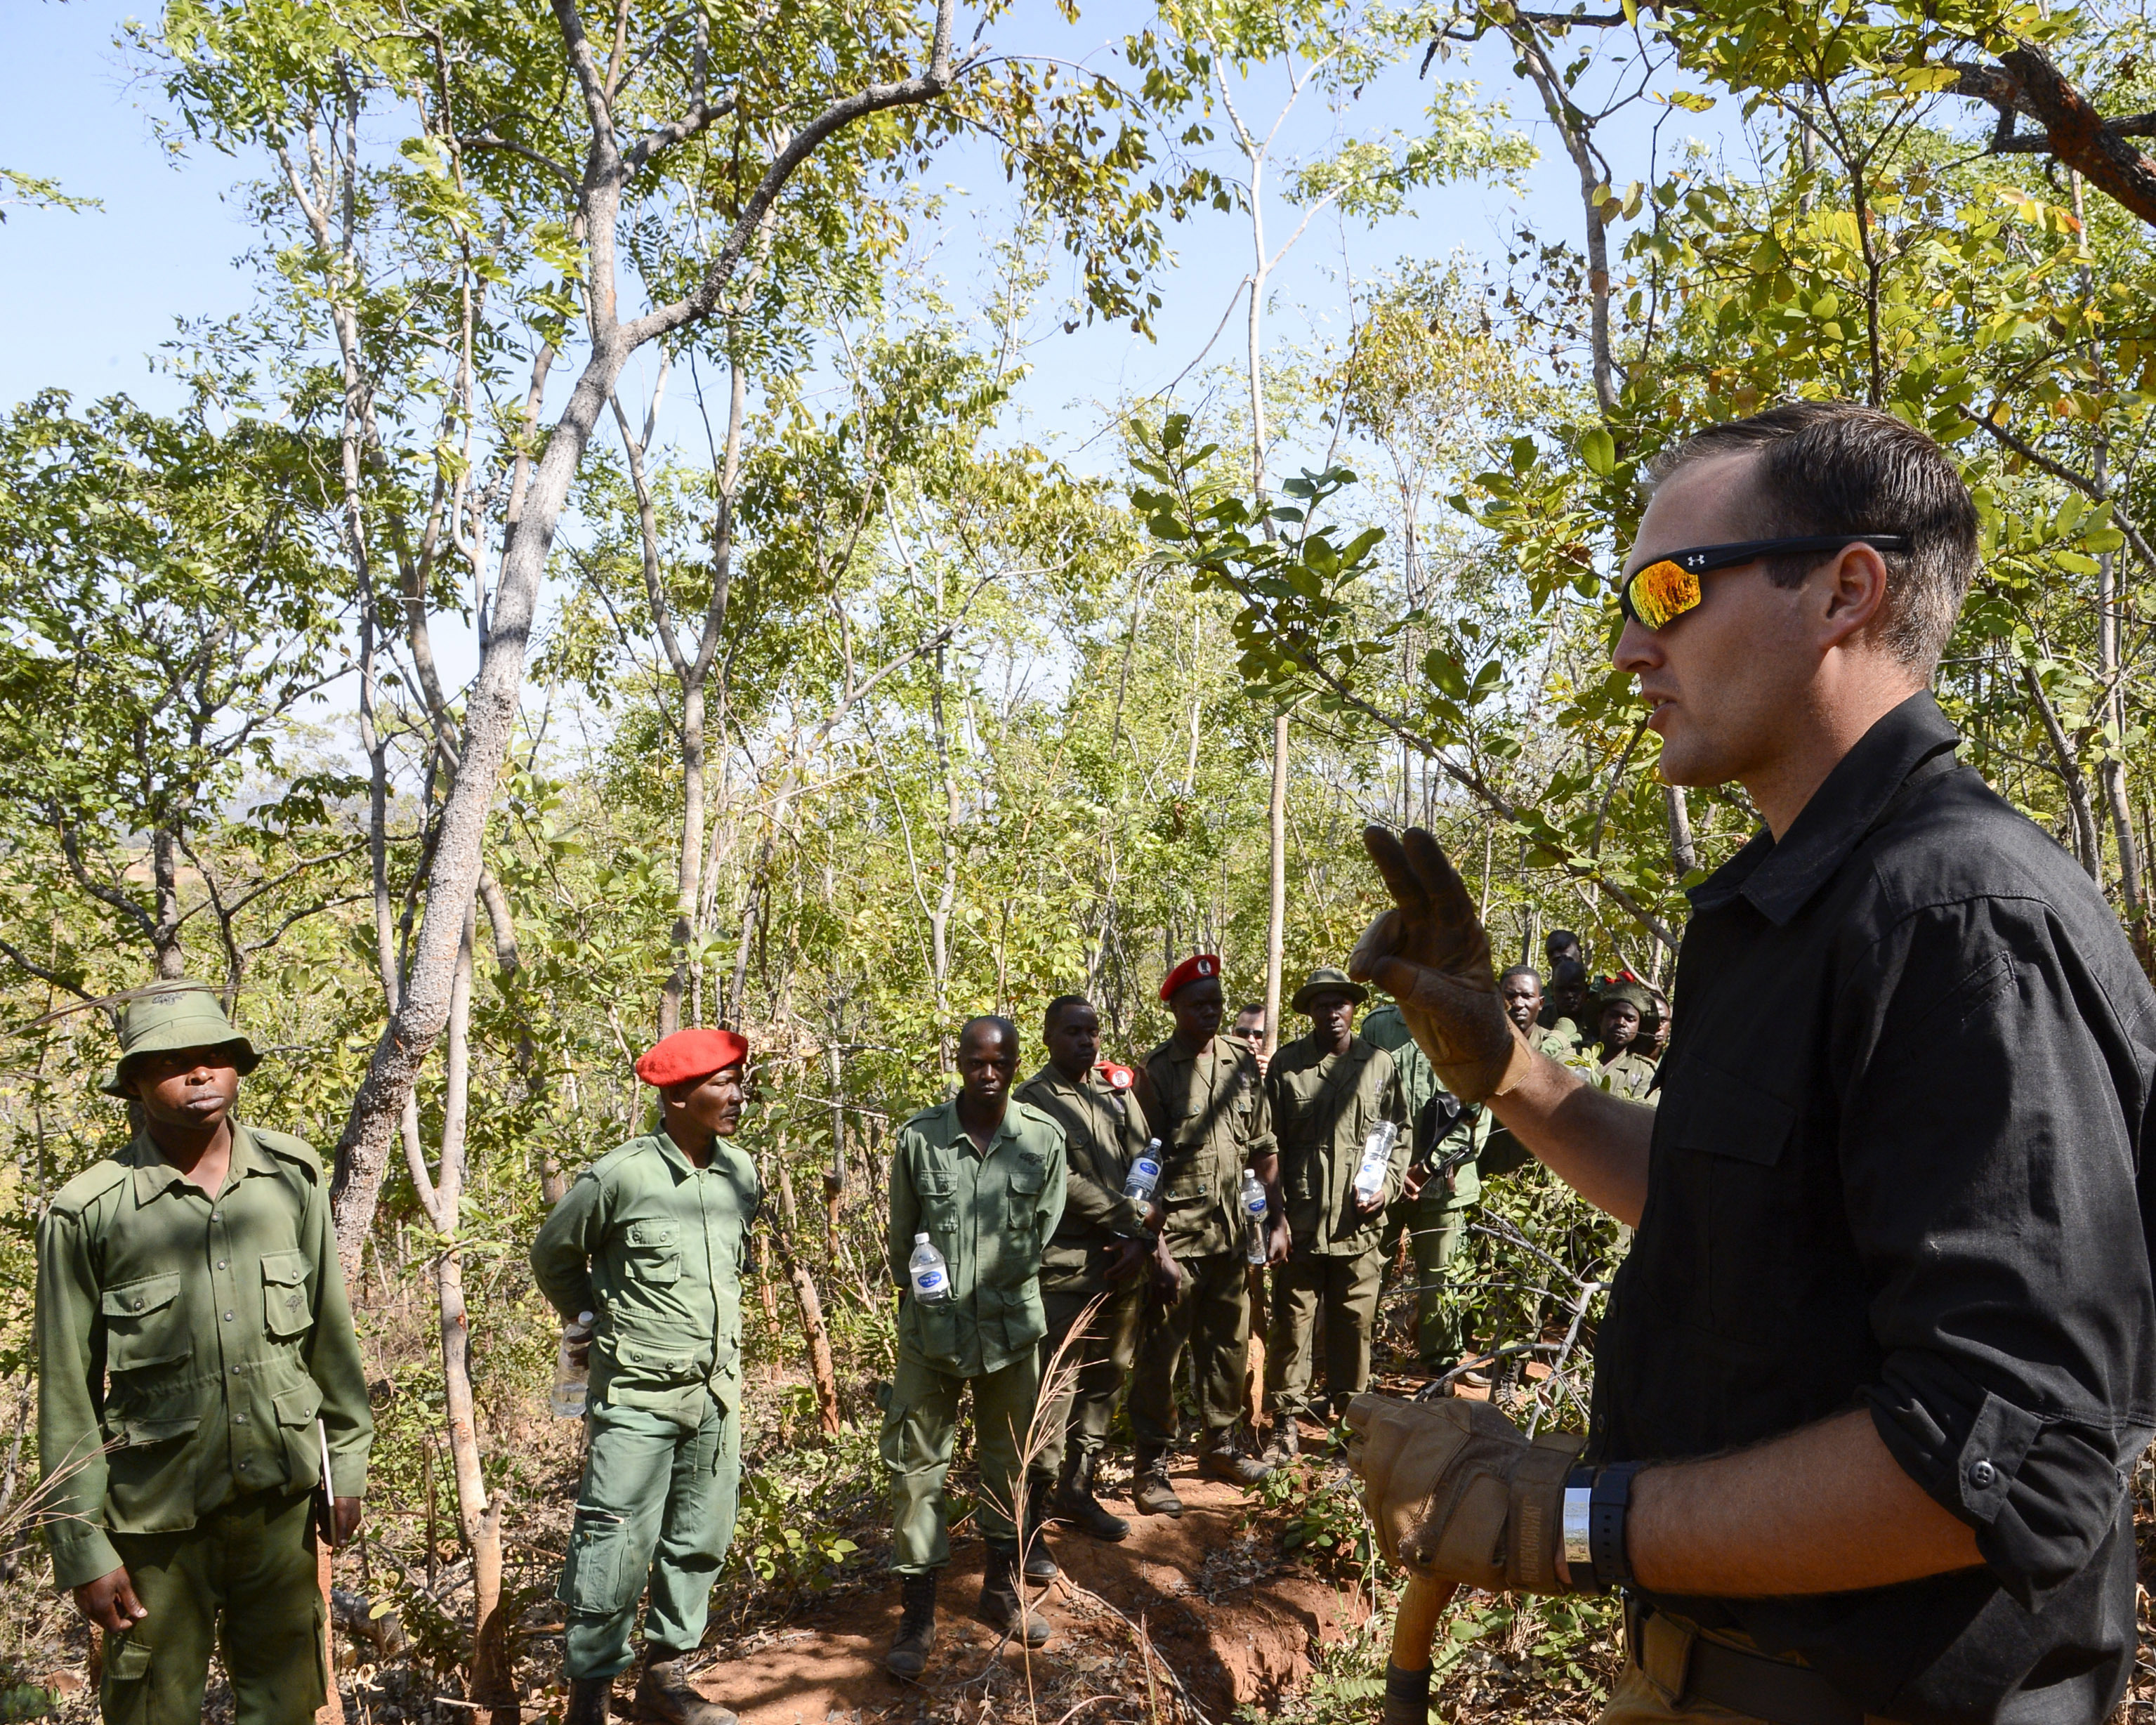 U.S. Army Sgt. Matthew Smith, with the 404th Civil Affairs Battalion, assigned to Combined Joint Task Force-Horn of Africa, conducts a practical exercise in ground surveillance for Tanzania Wildlife Management Authority (TAWA) patrol game wardens during a Counter Illicit Trafficking course, in Ngwala, Tanzania, July 24, 2018. The course provided by the 404th Civil Affairs Battalion is a month-long course to enhance TAWA's anti-poaching capabilities in Tanzania. (U.S. Navy Photo by Mass Communication Specialist 2nd Class Timothy M. Ahearn)